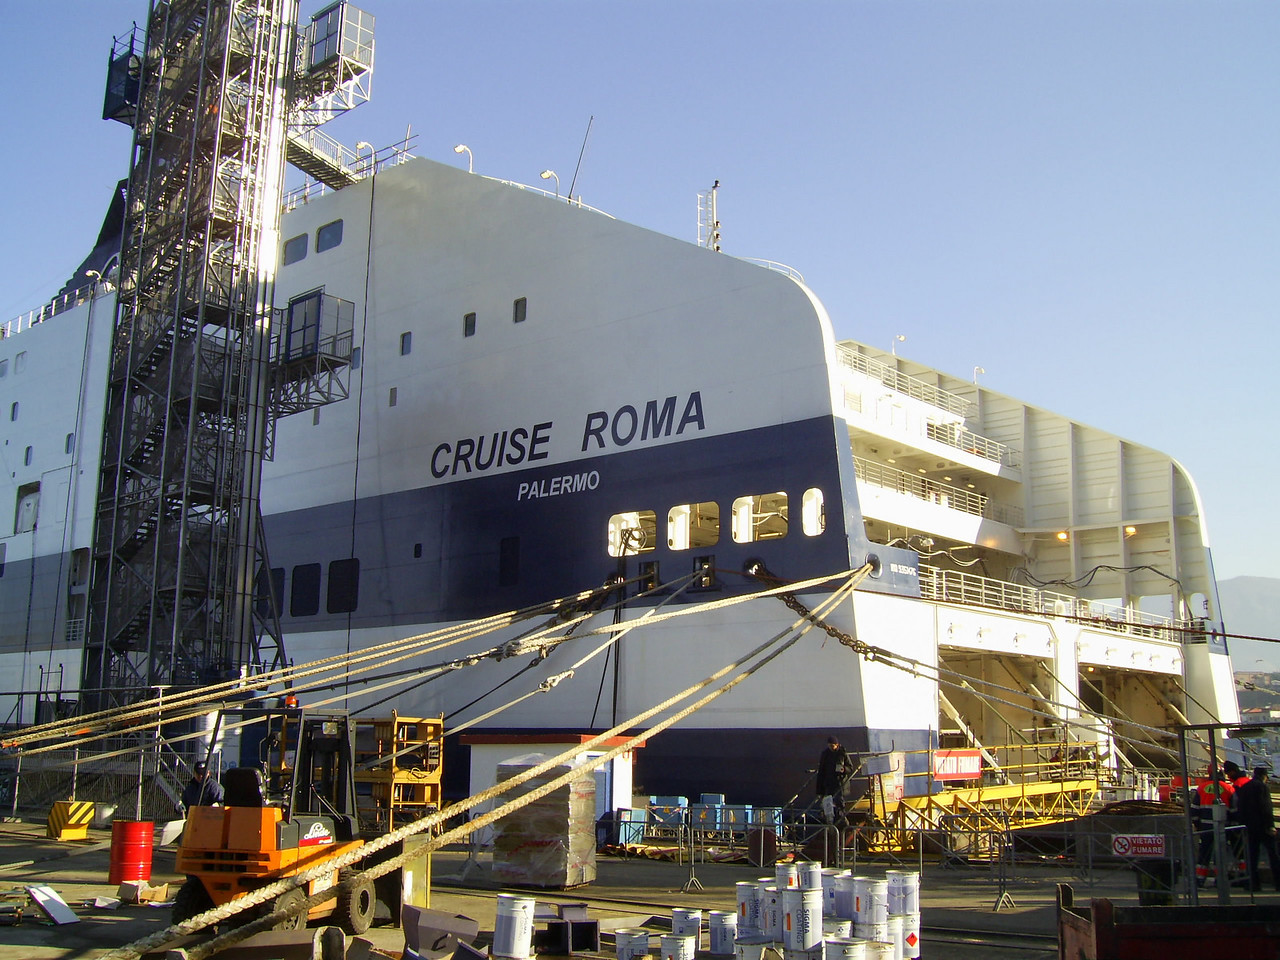 2007 - CRUISE ROMA in construction at Castellammare di Stabia.